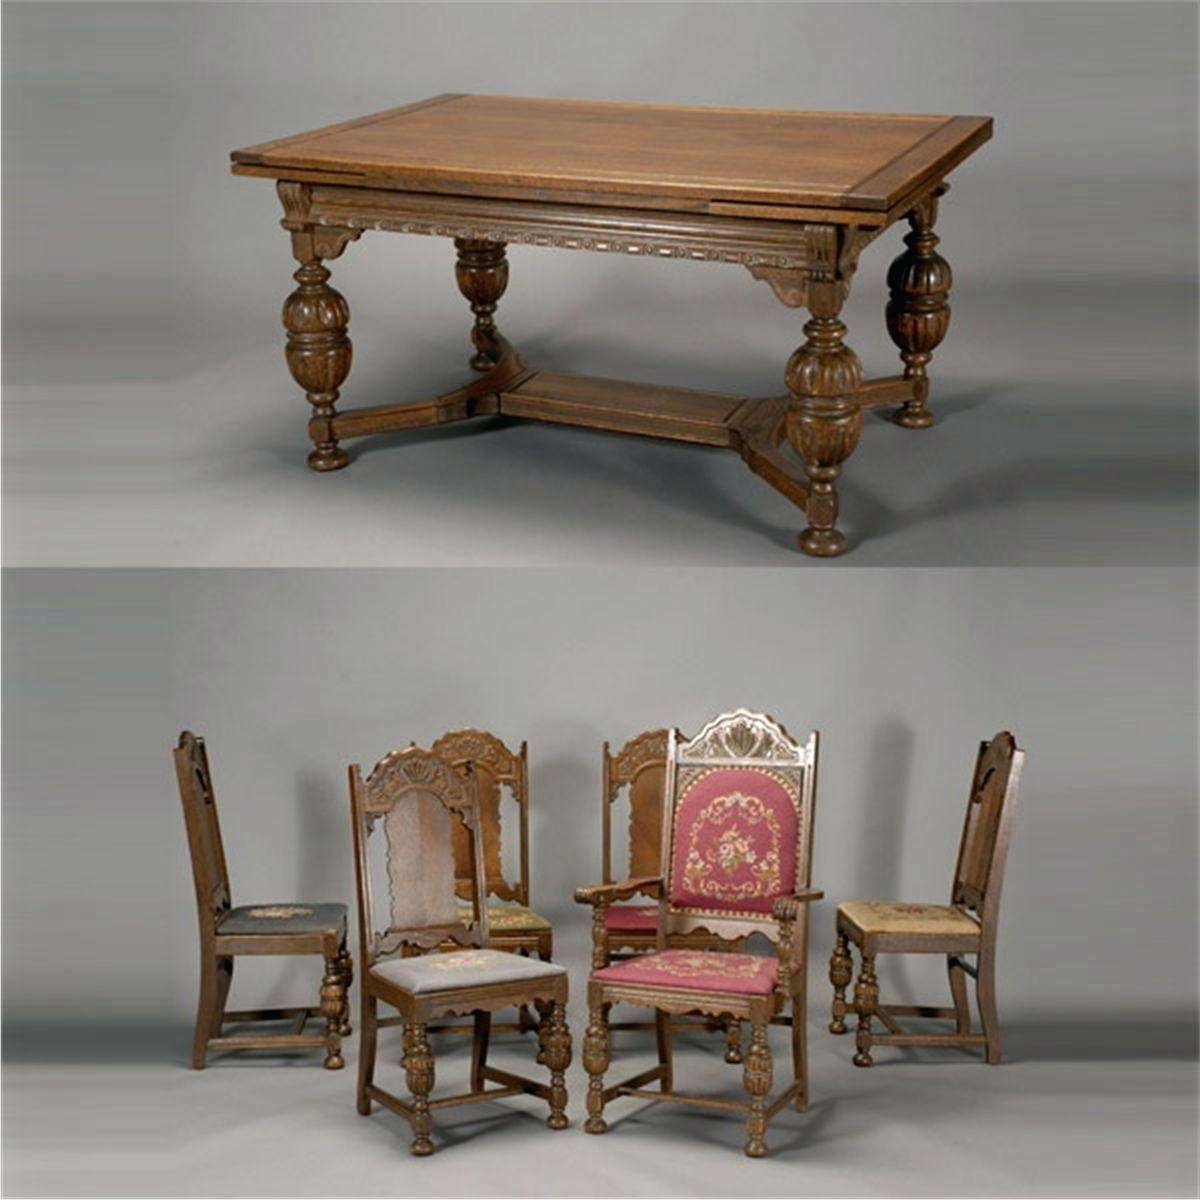 Coffee Table : Jacobean Coffee Table Popular Tables A Oak Pertaining To Well Known Jacobean Coffee Tables (View 5 of 20)